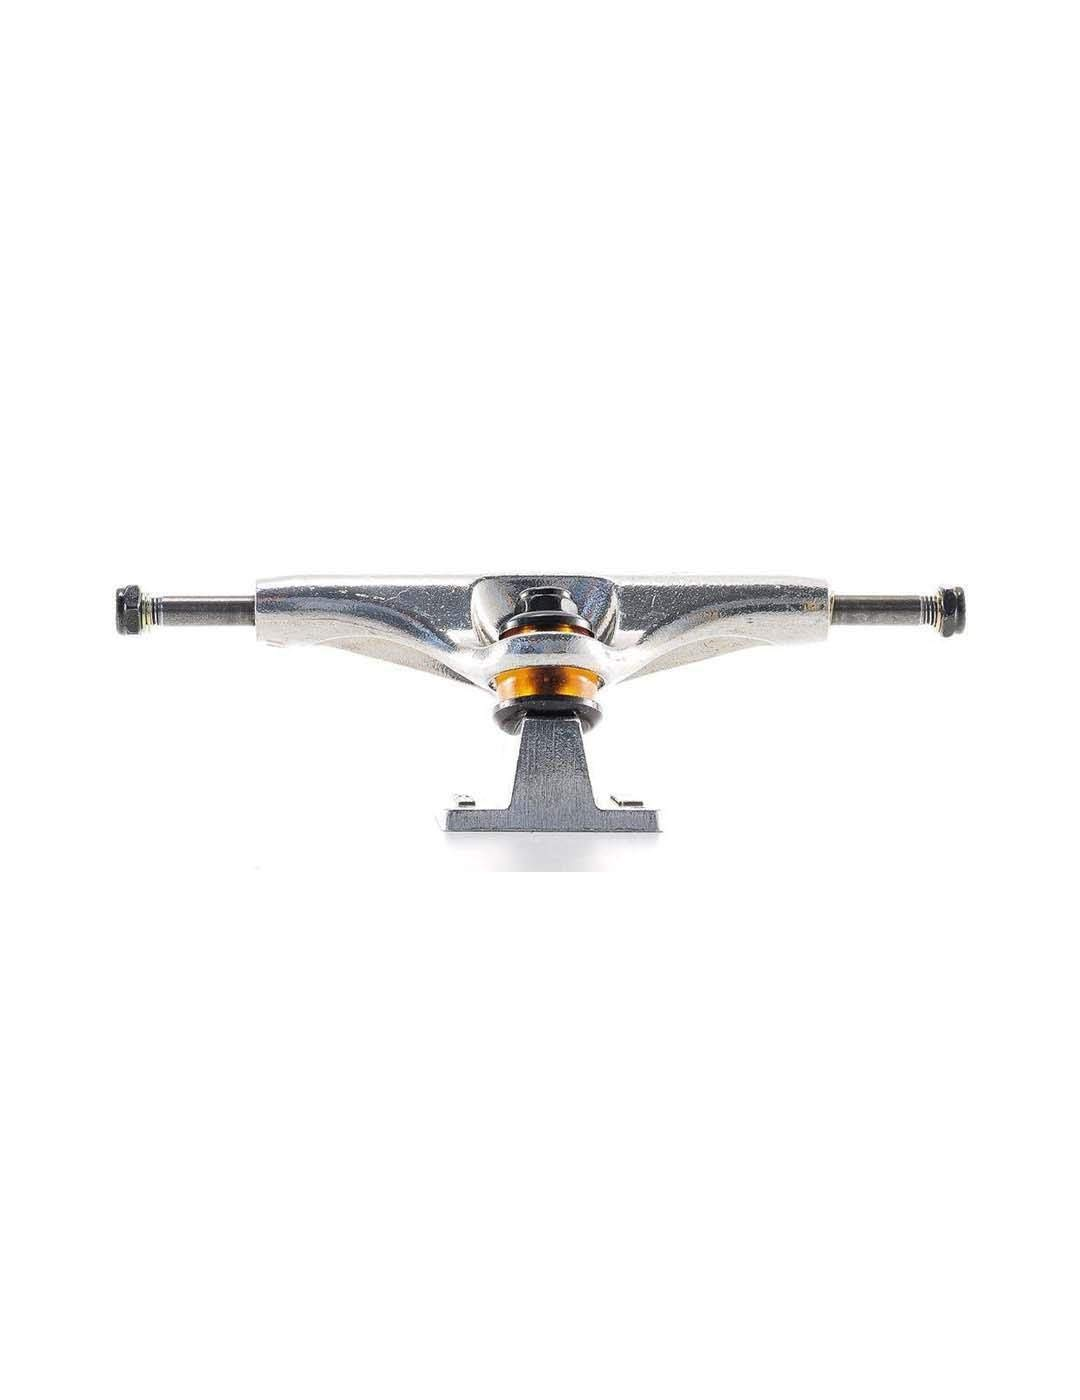 477a7f0978 Amazon.com : Thunder Polished Team Skateboard Trucks (Set of 2) : Sports &  Outdoors